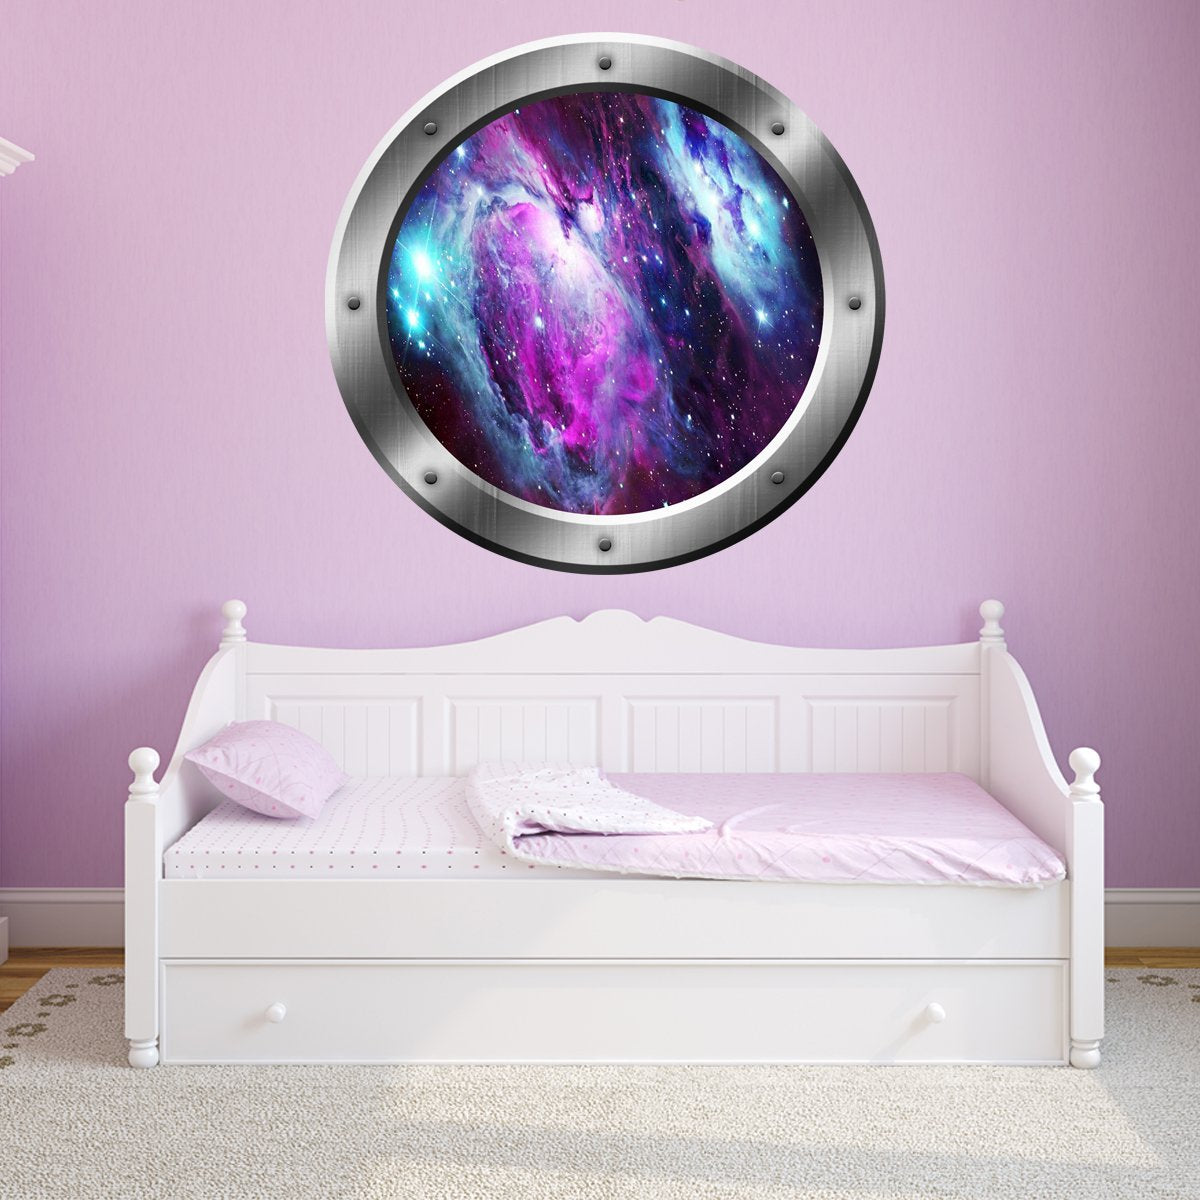 Space Nebula Window Porthole Window Decal Universe Wall Decor - VWAQ Vinyl Wall Art Quotes and Prints